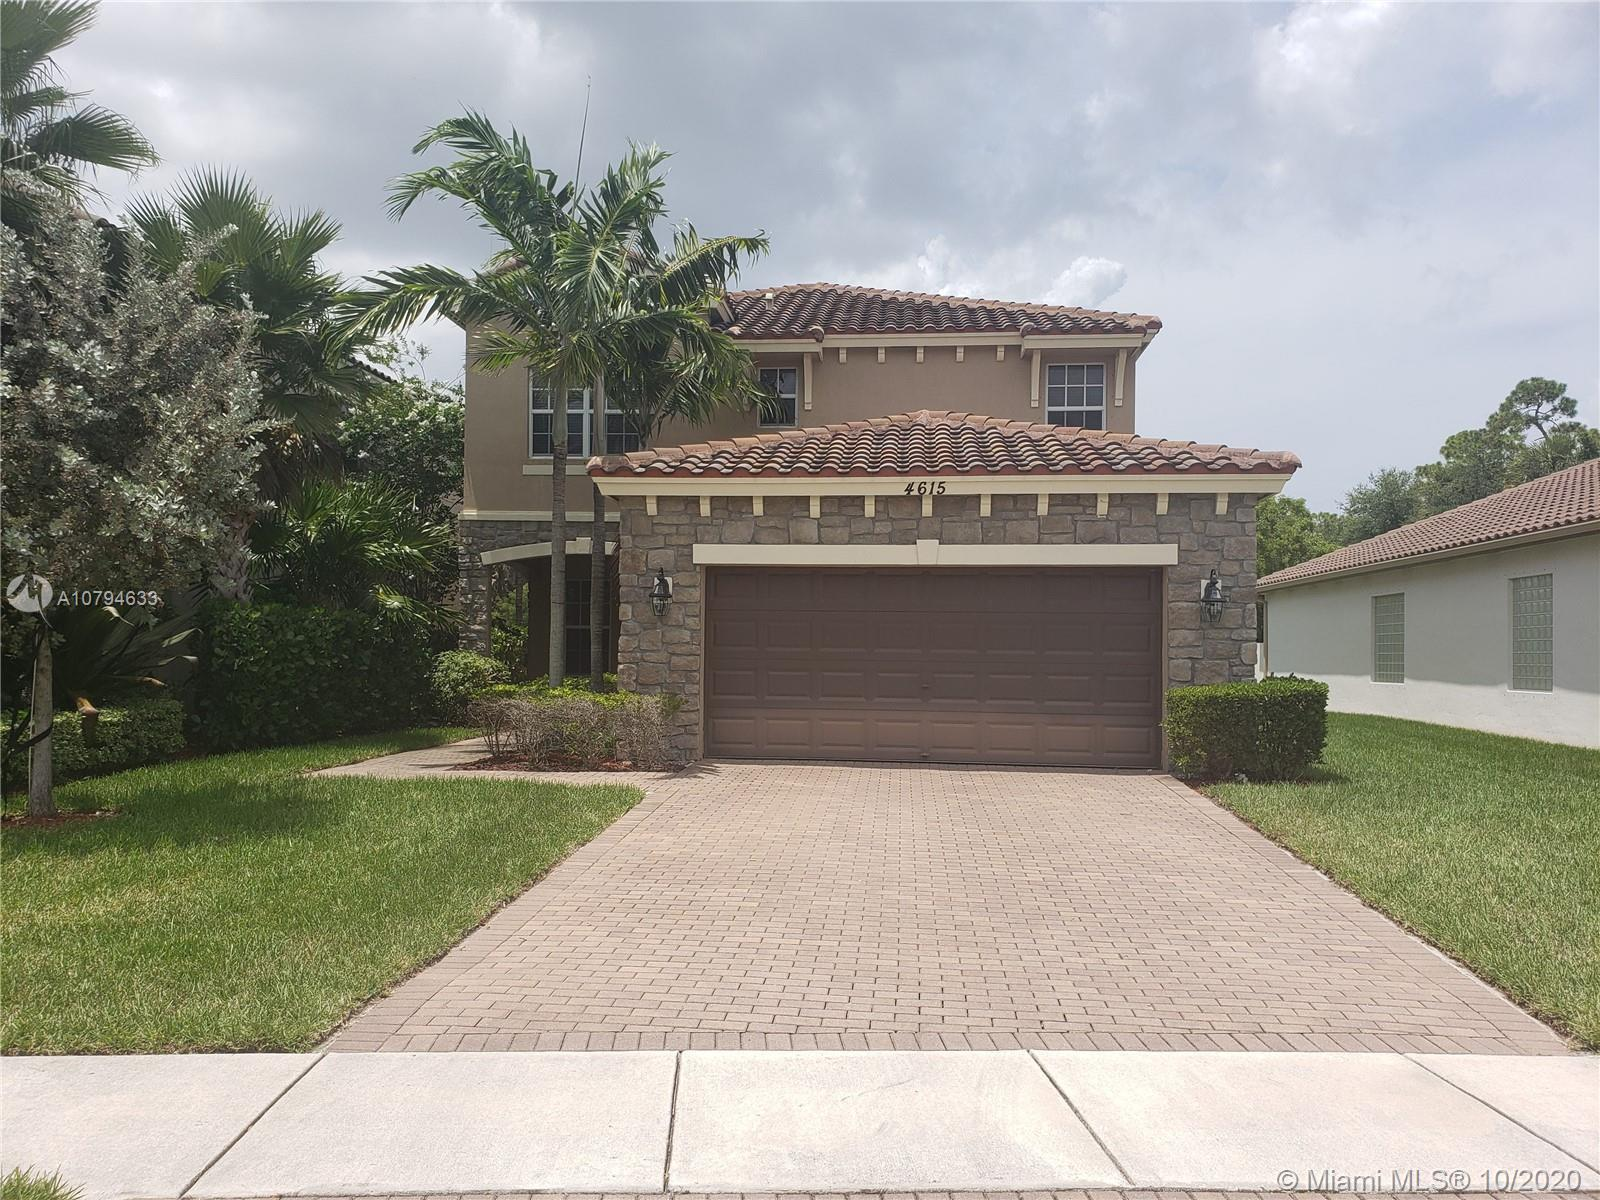 Beautiful 5 bedroom, 3 bath home in gated Capistara community. Your new home awaits you, with a spac